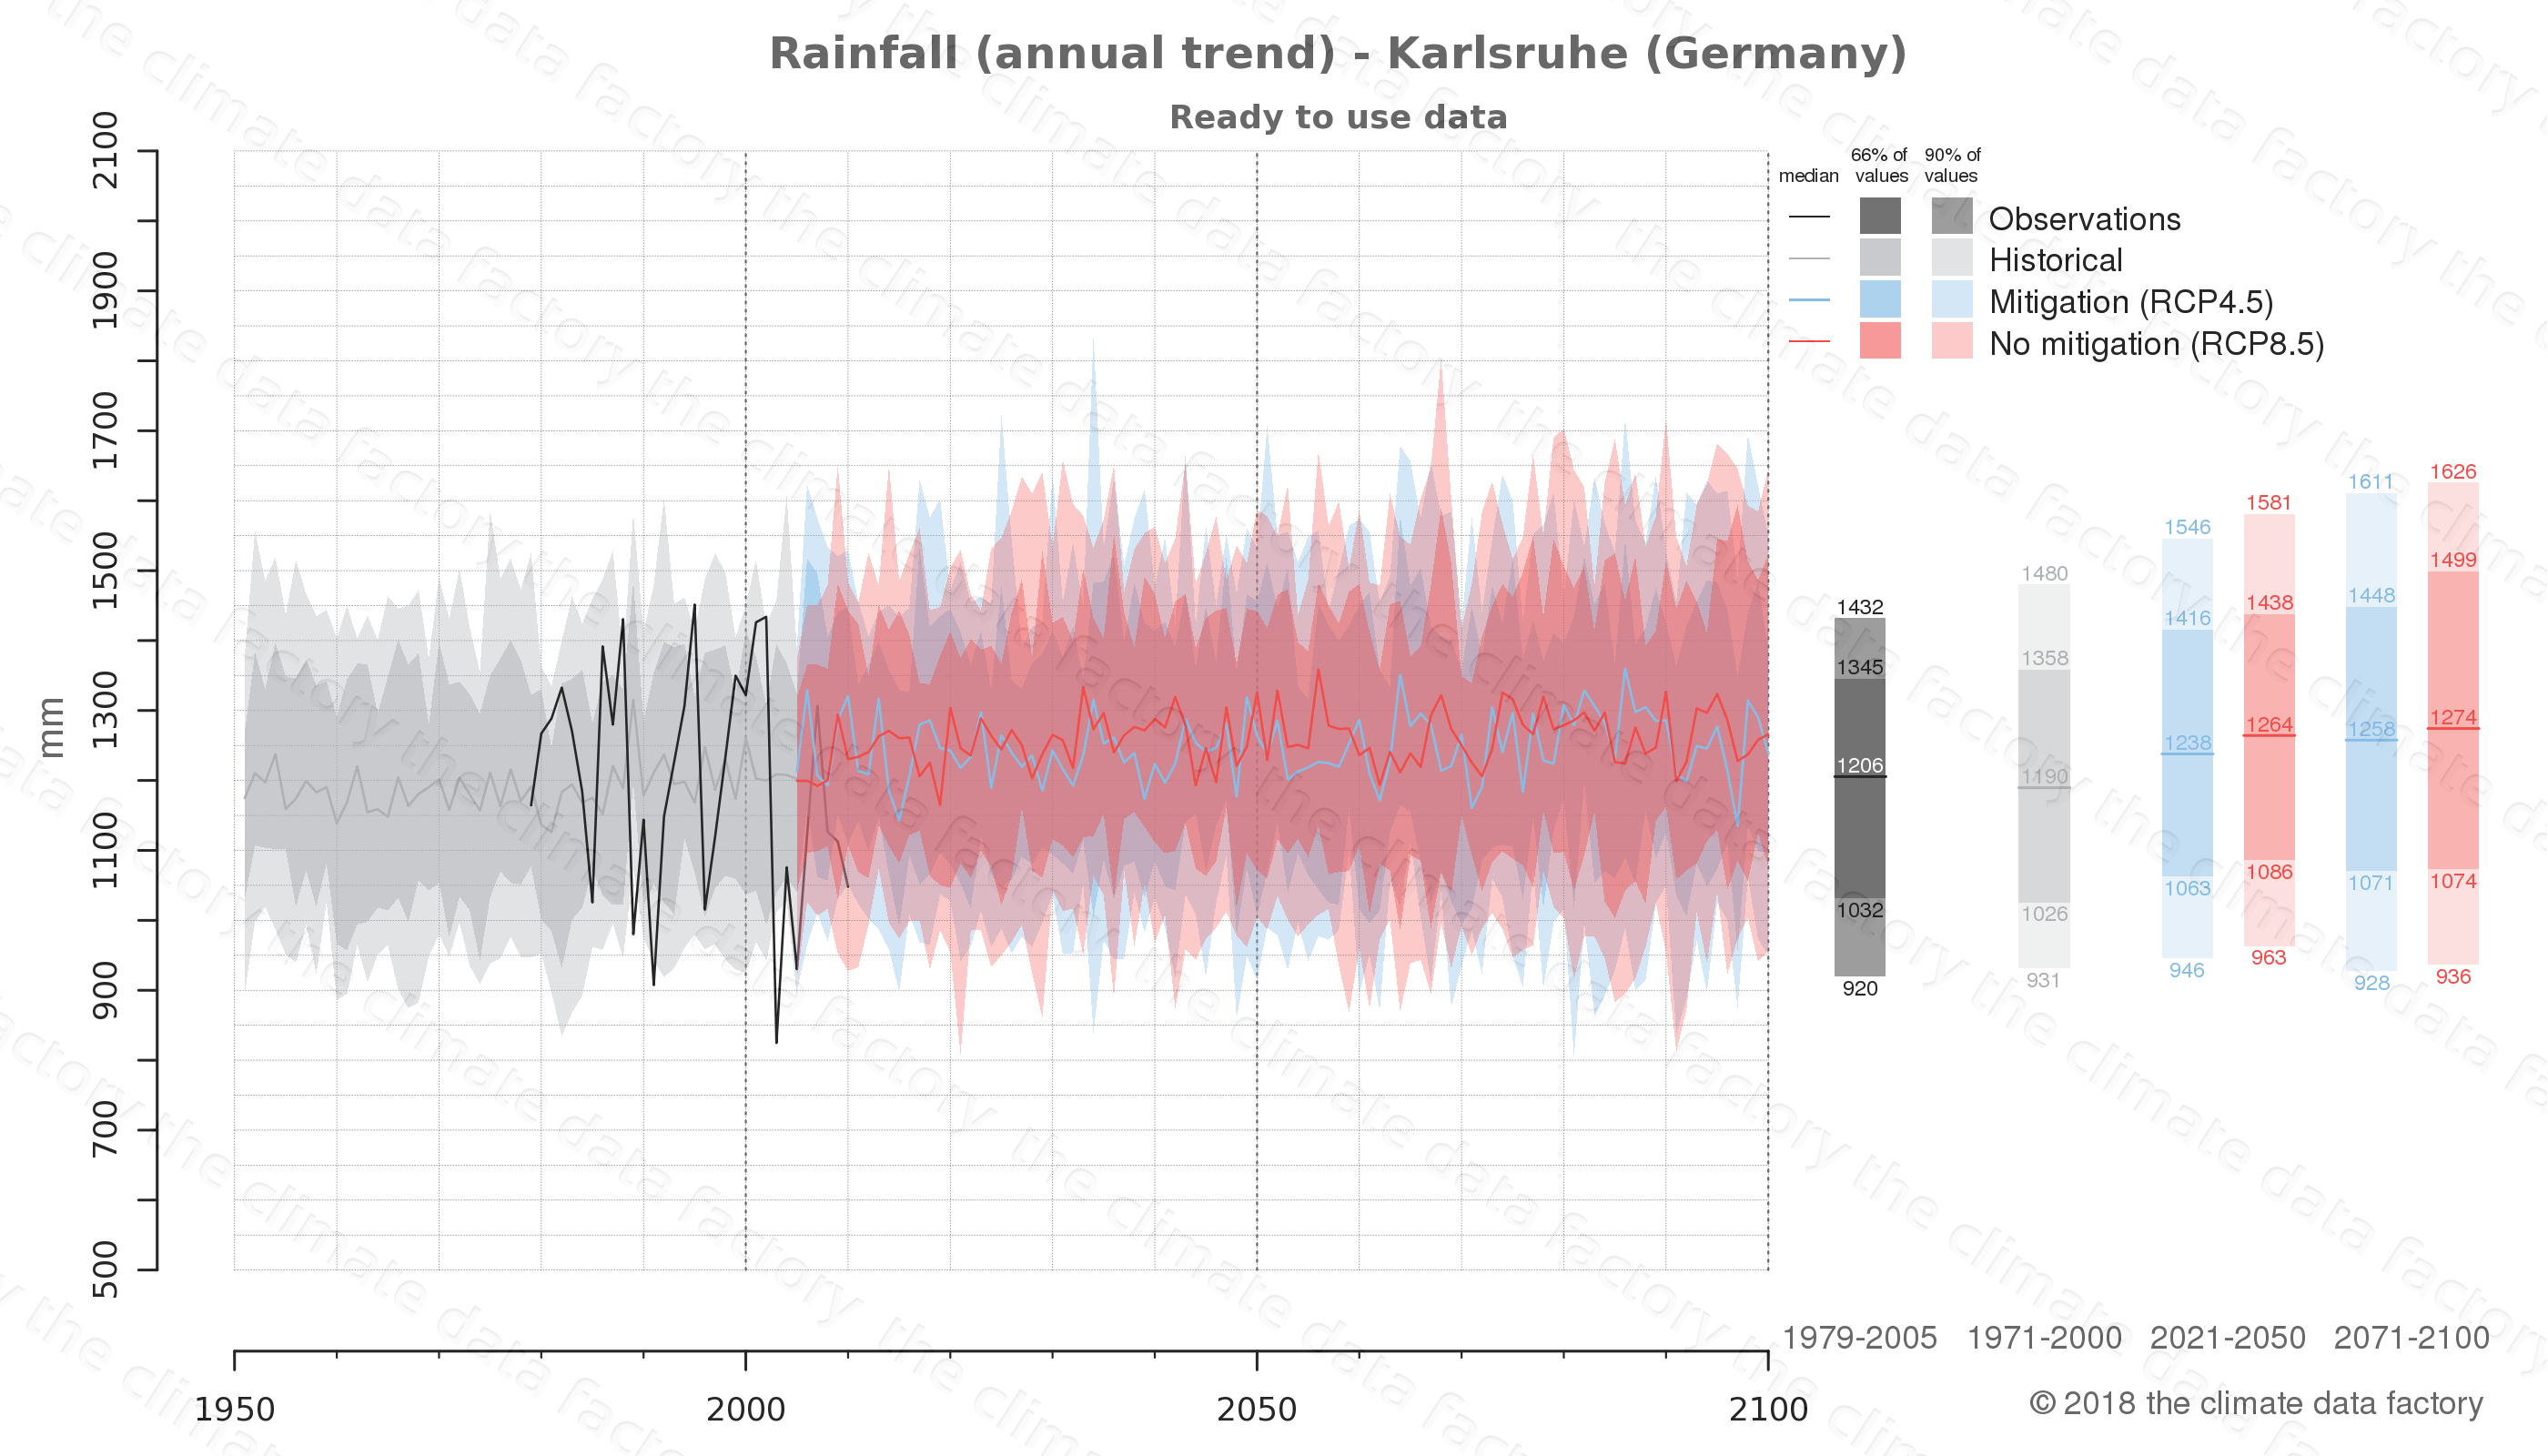 climate change data policy adaptation climate graph city data rainfall karlsruhe germany